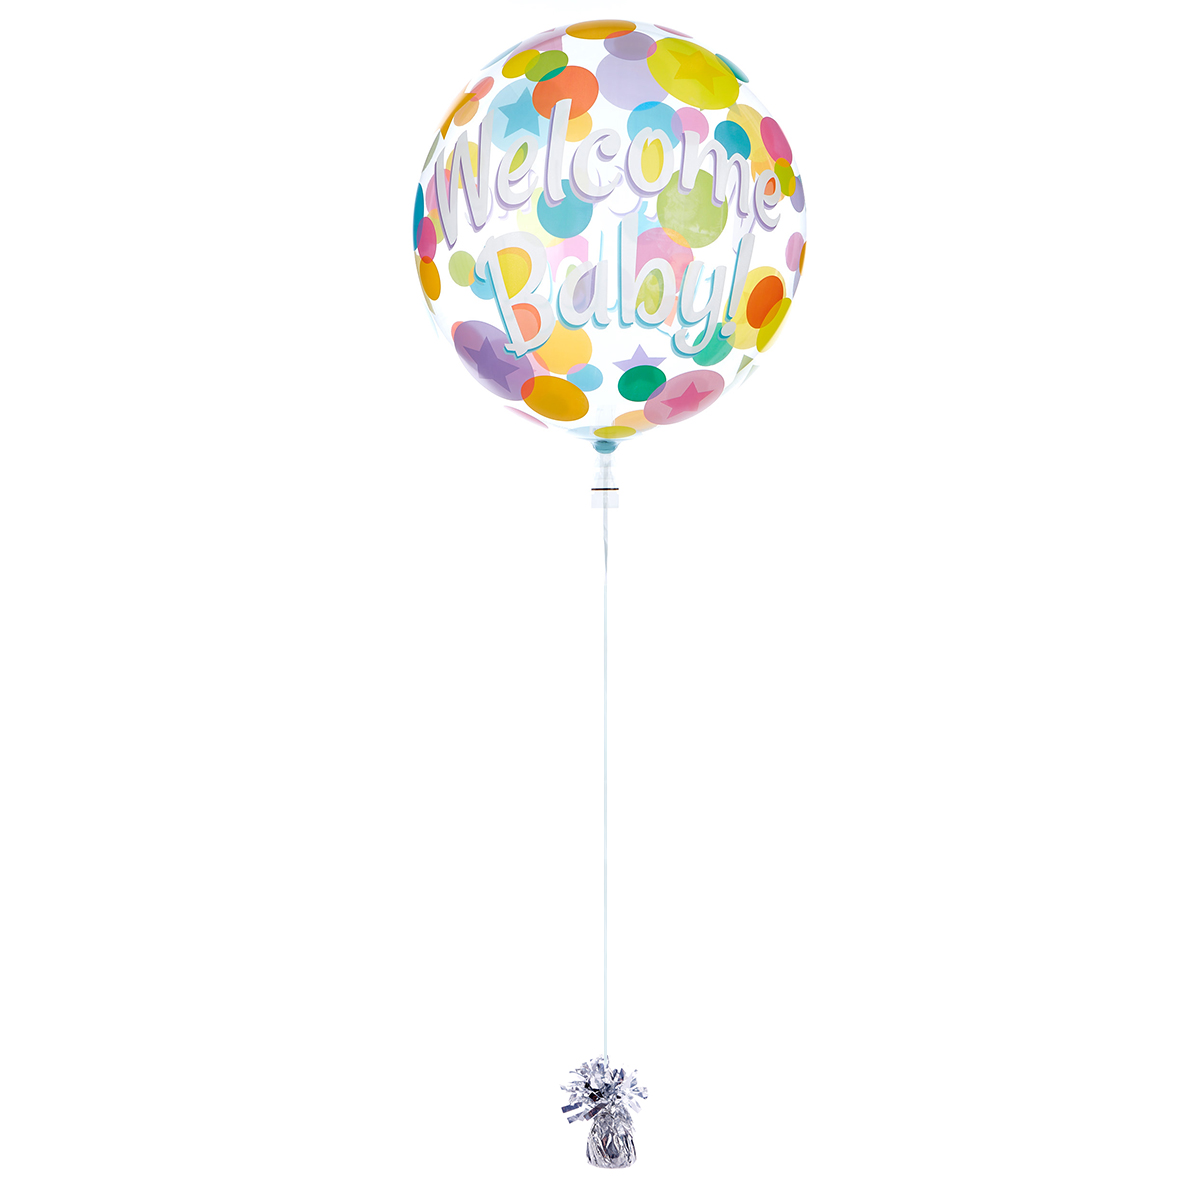 22-Inch Bubble Balloon - Welcome Baby - DELIVERED INFLATED!